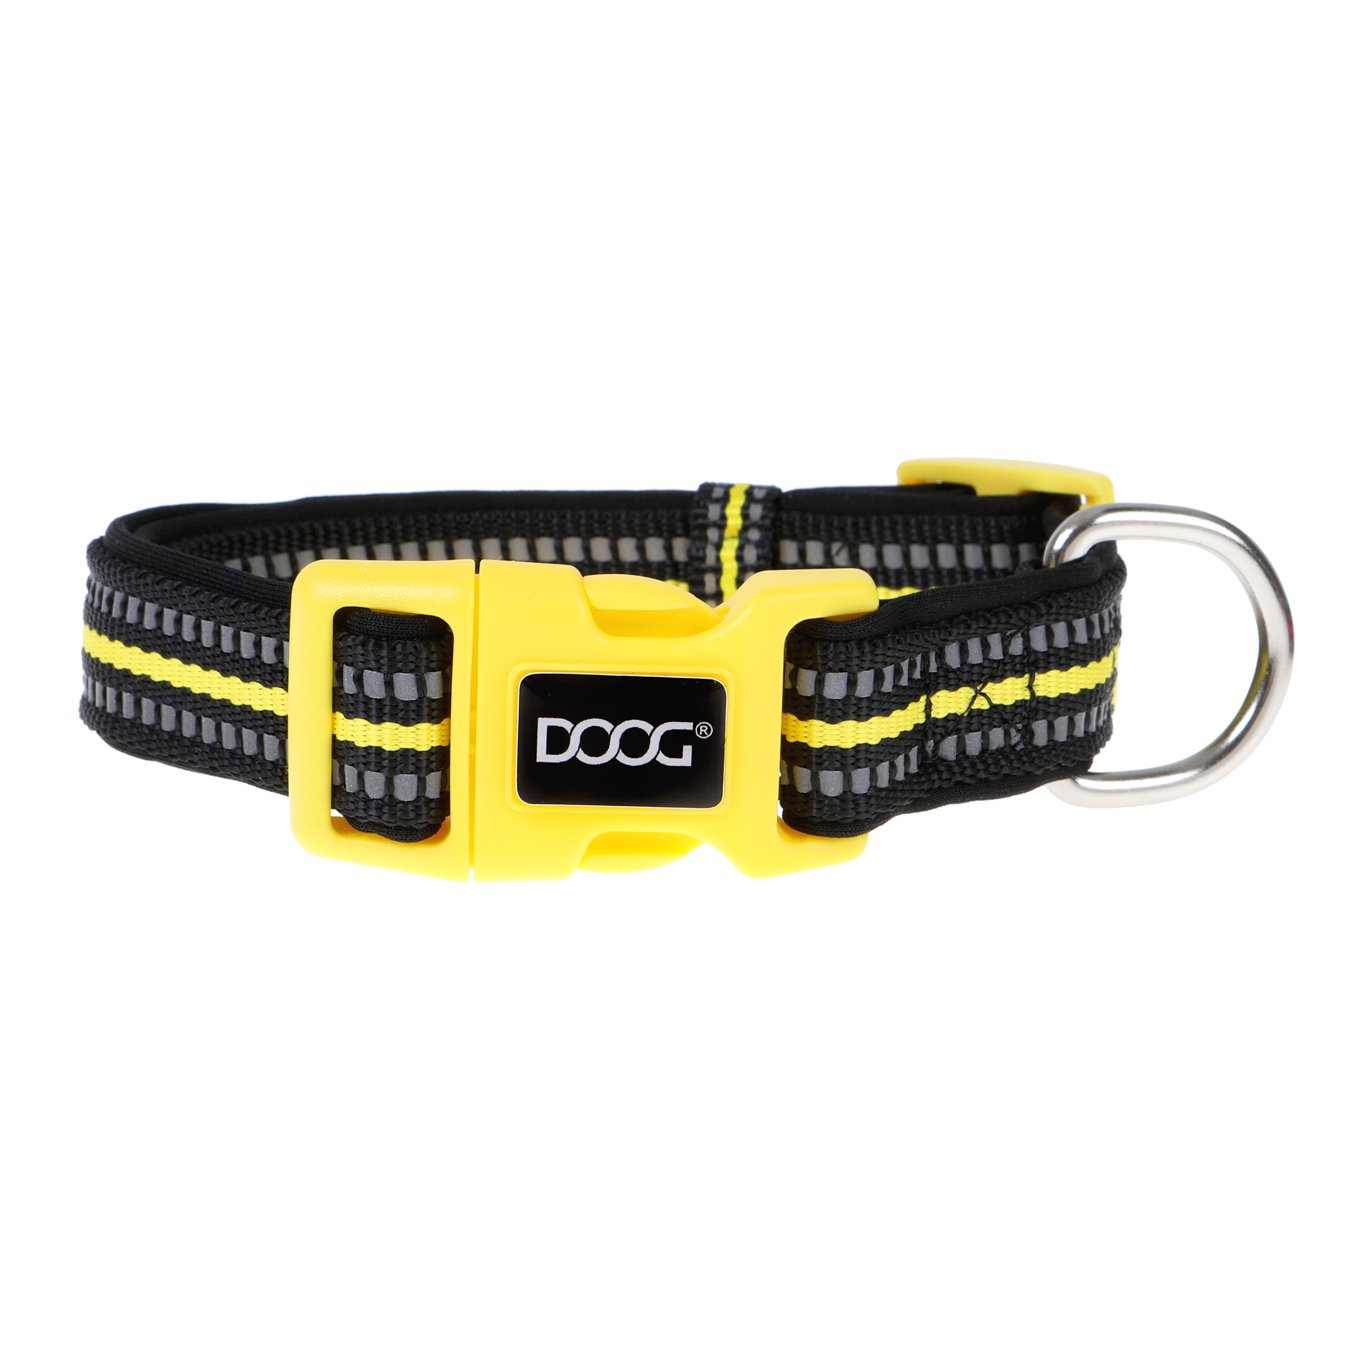 Dog Owners Outdoor Gear DOOG54904